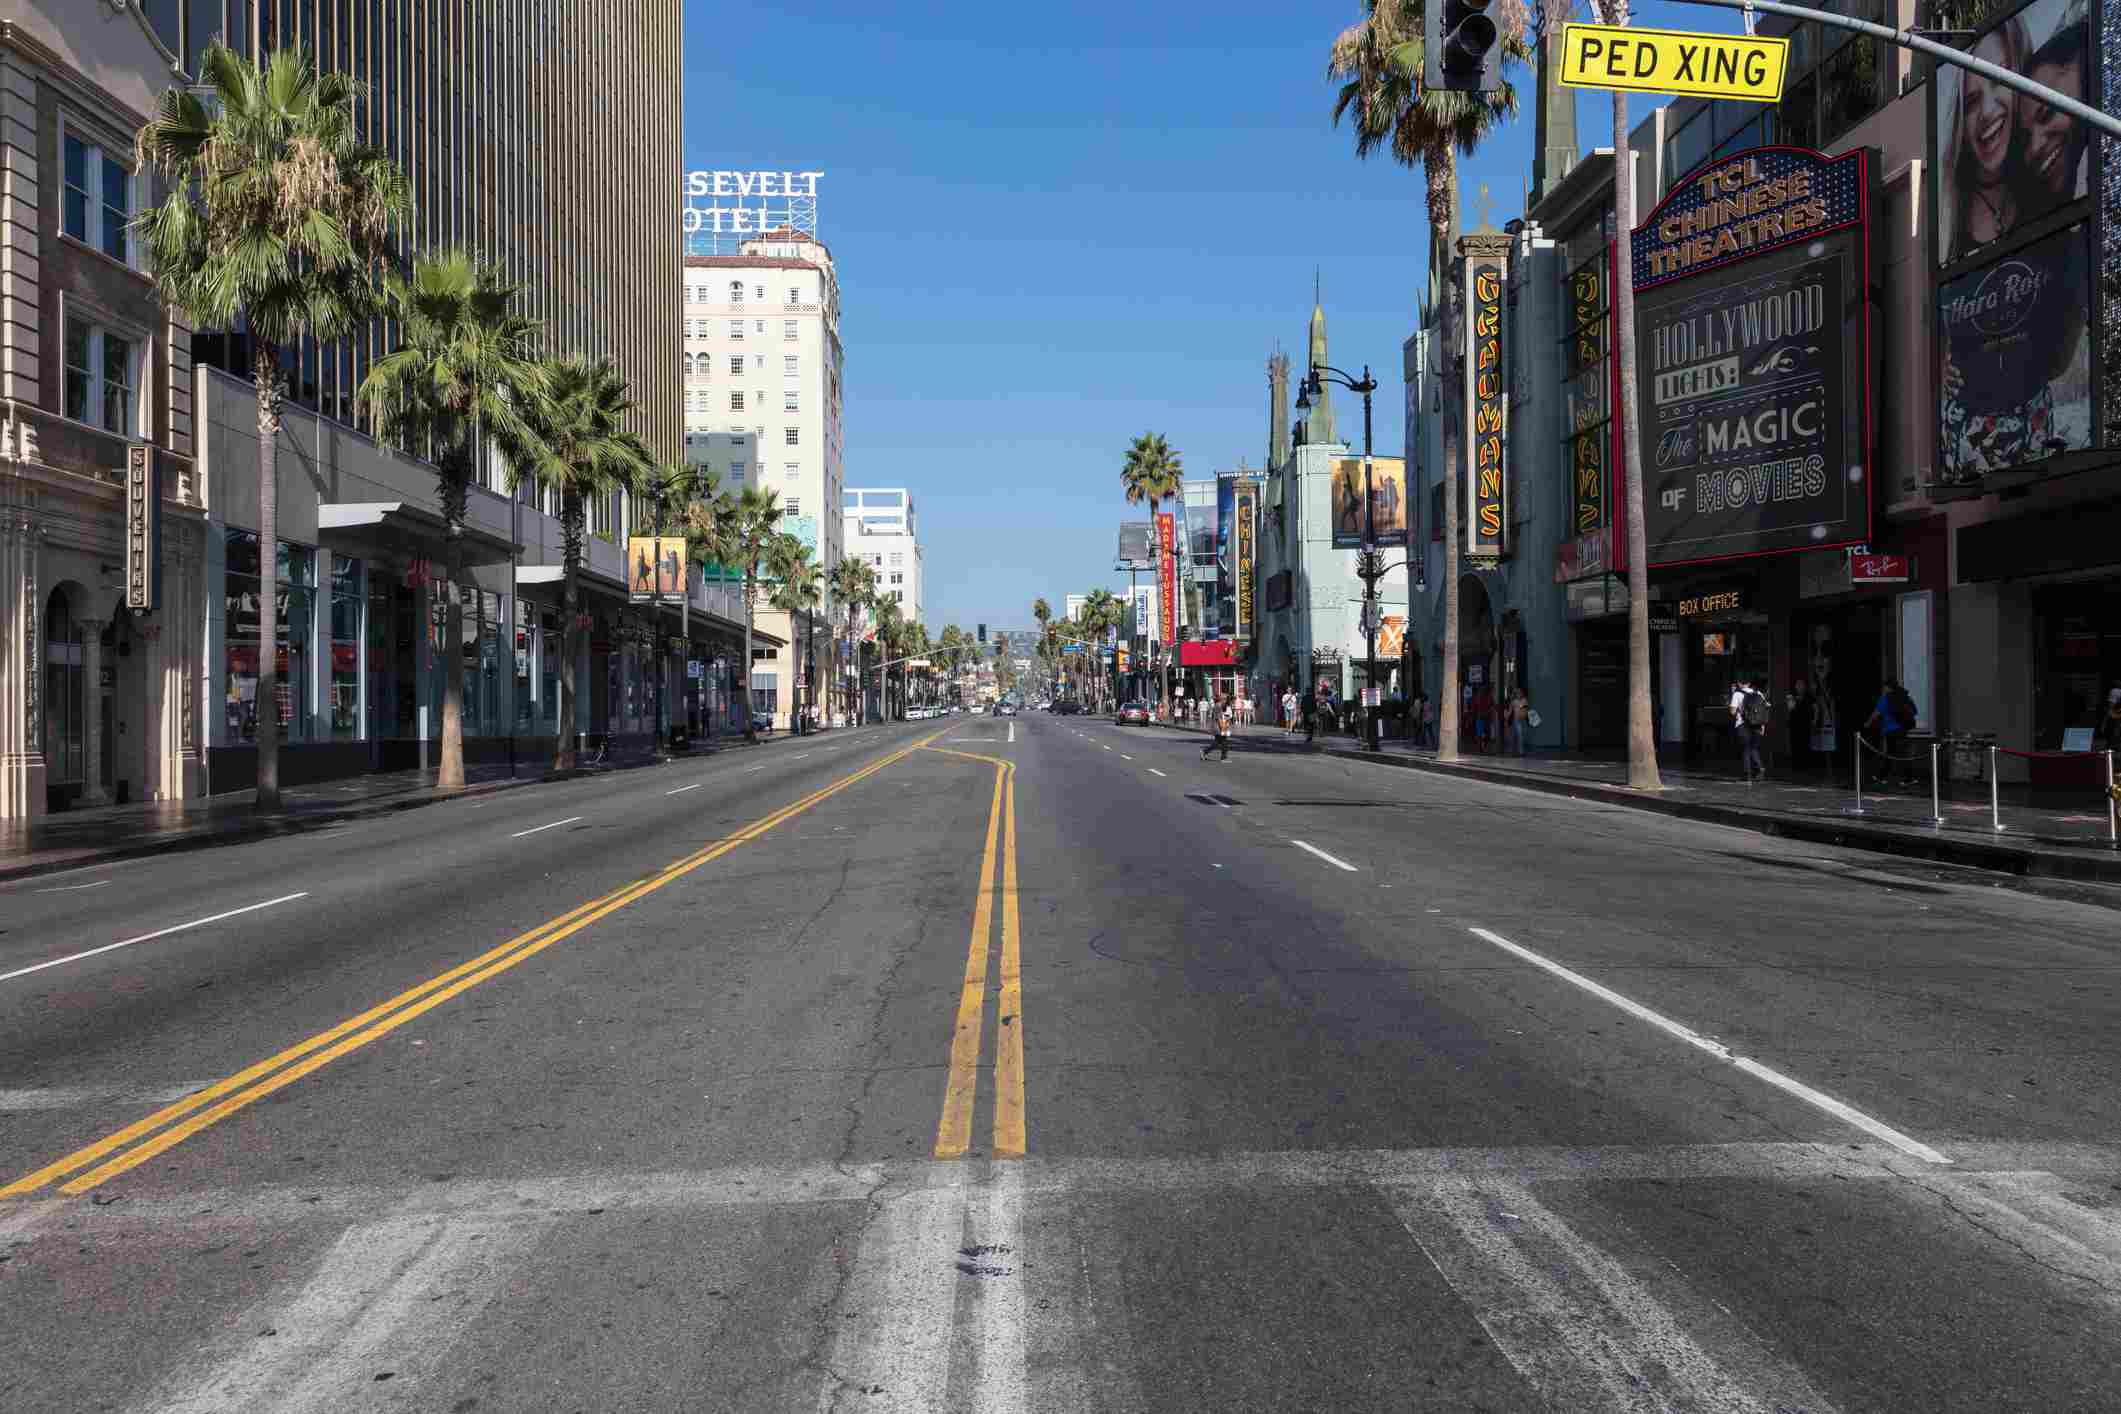 Early morning view of Hollywood Boulevard